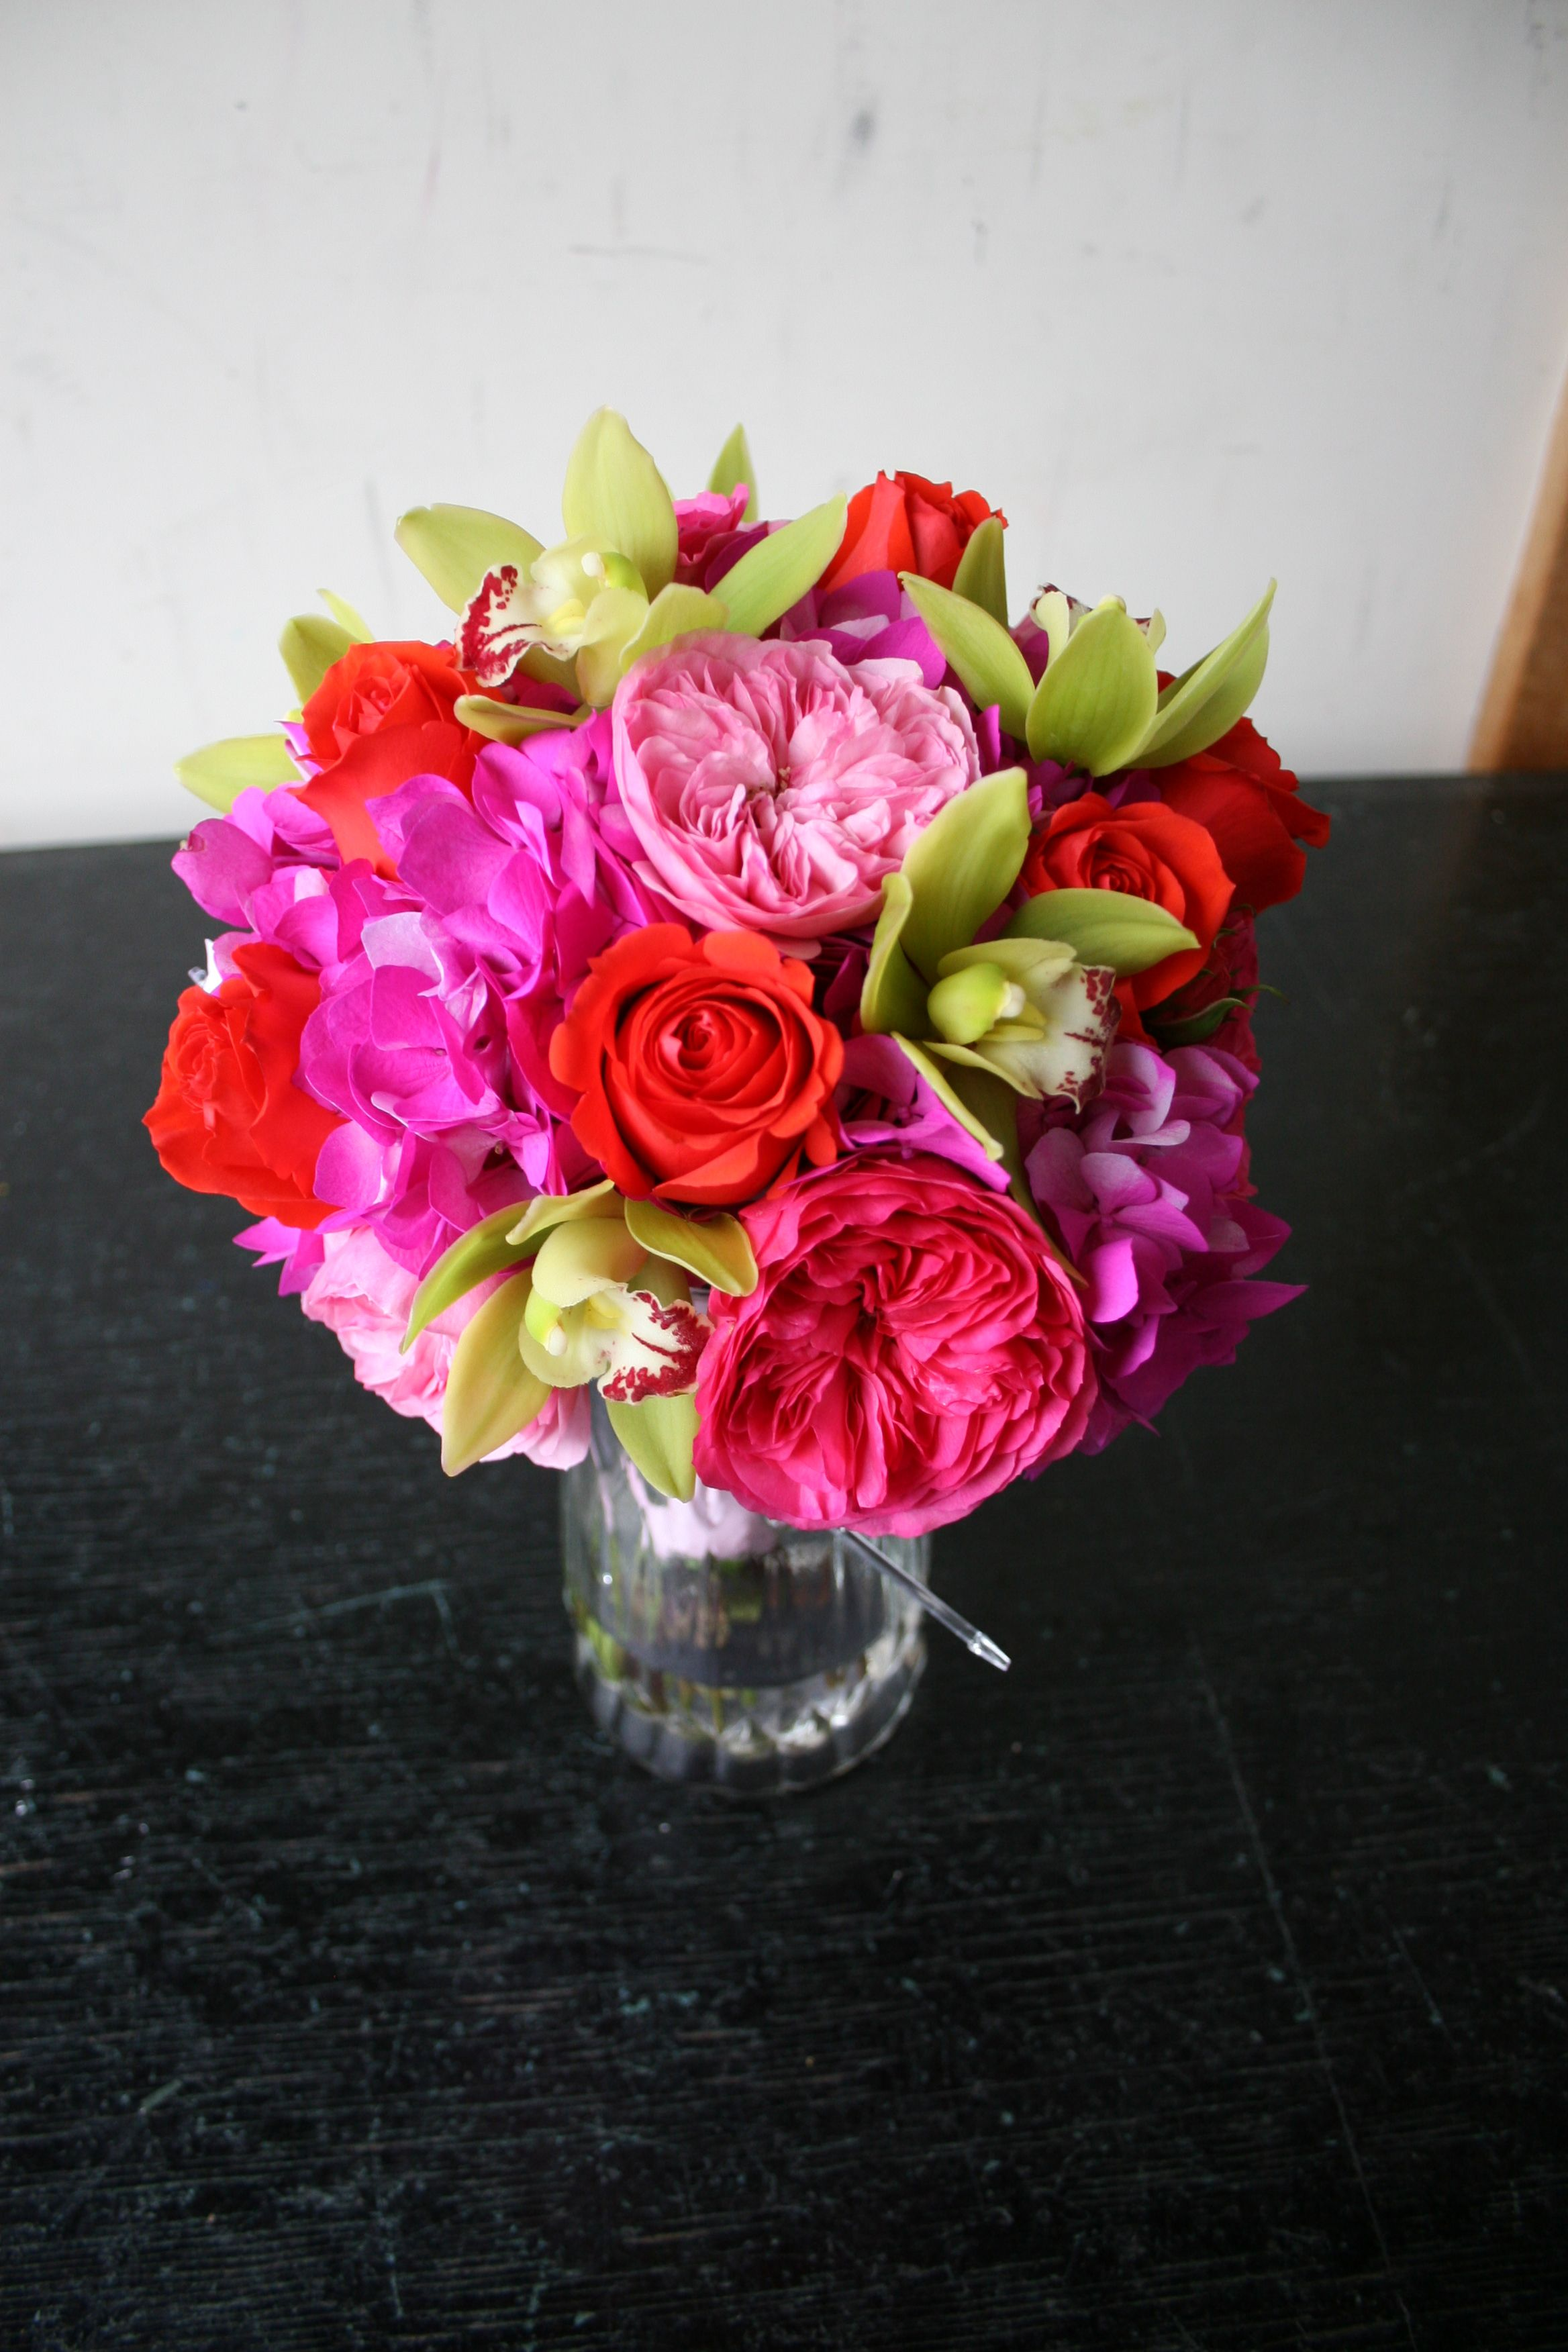 Pink Garden Rose And Hydrangea Bouquet bridal bouquet of hot pink garden roses, hot pink hydrangea, soft